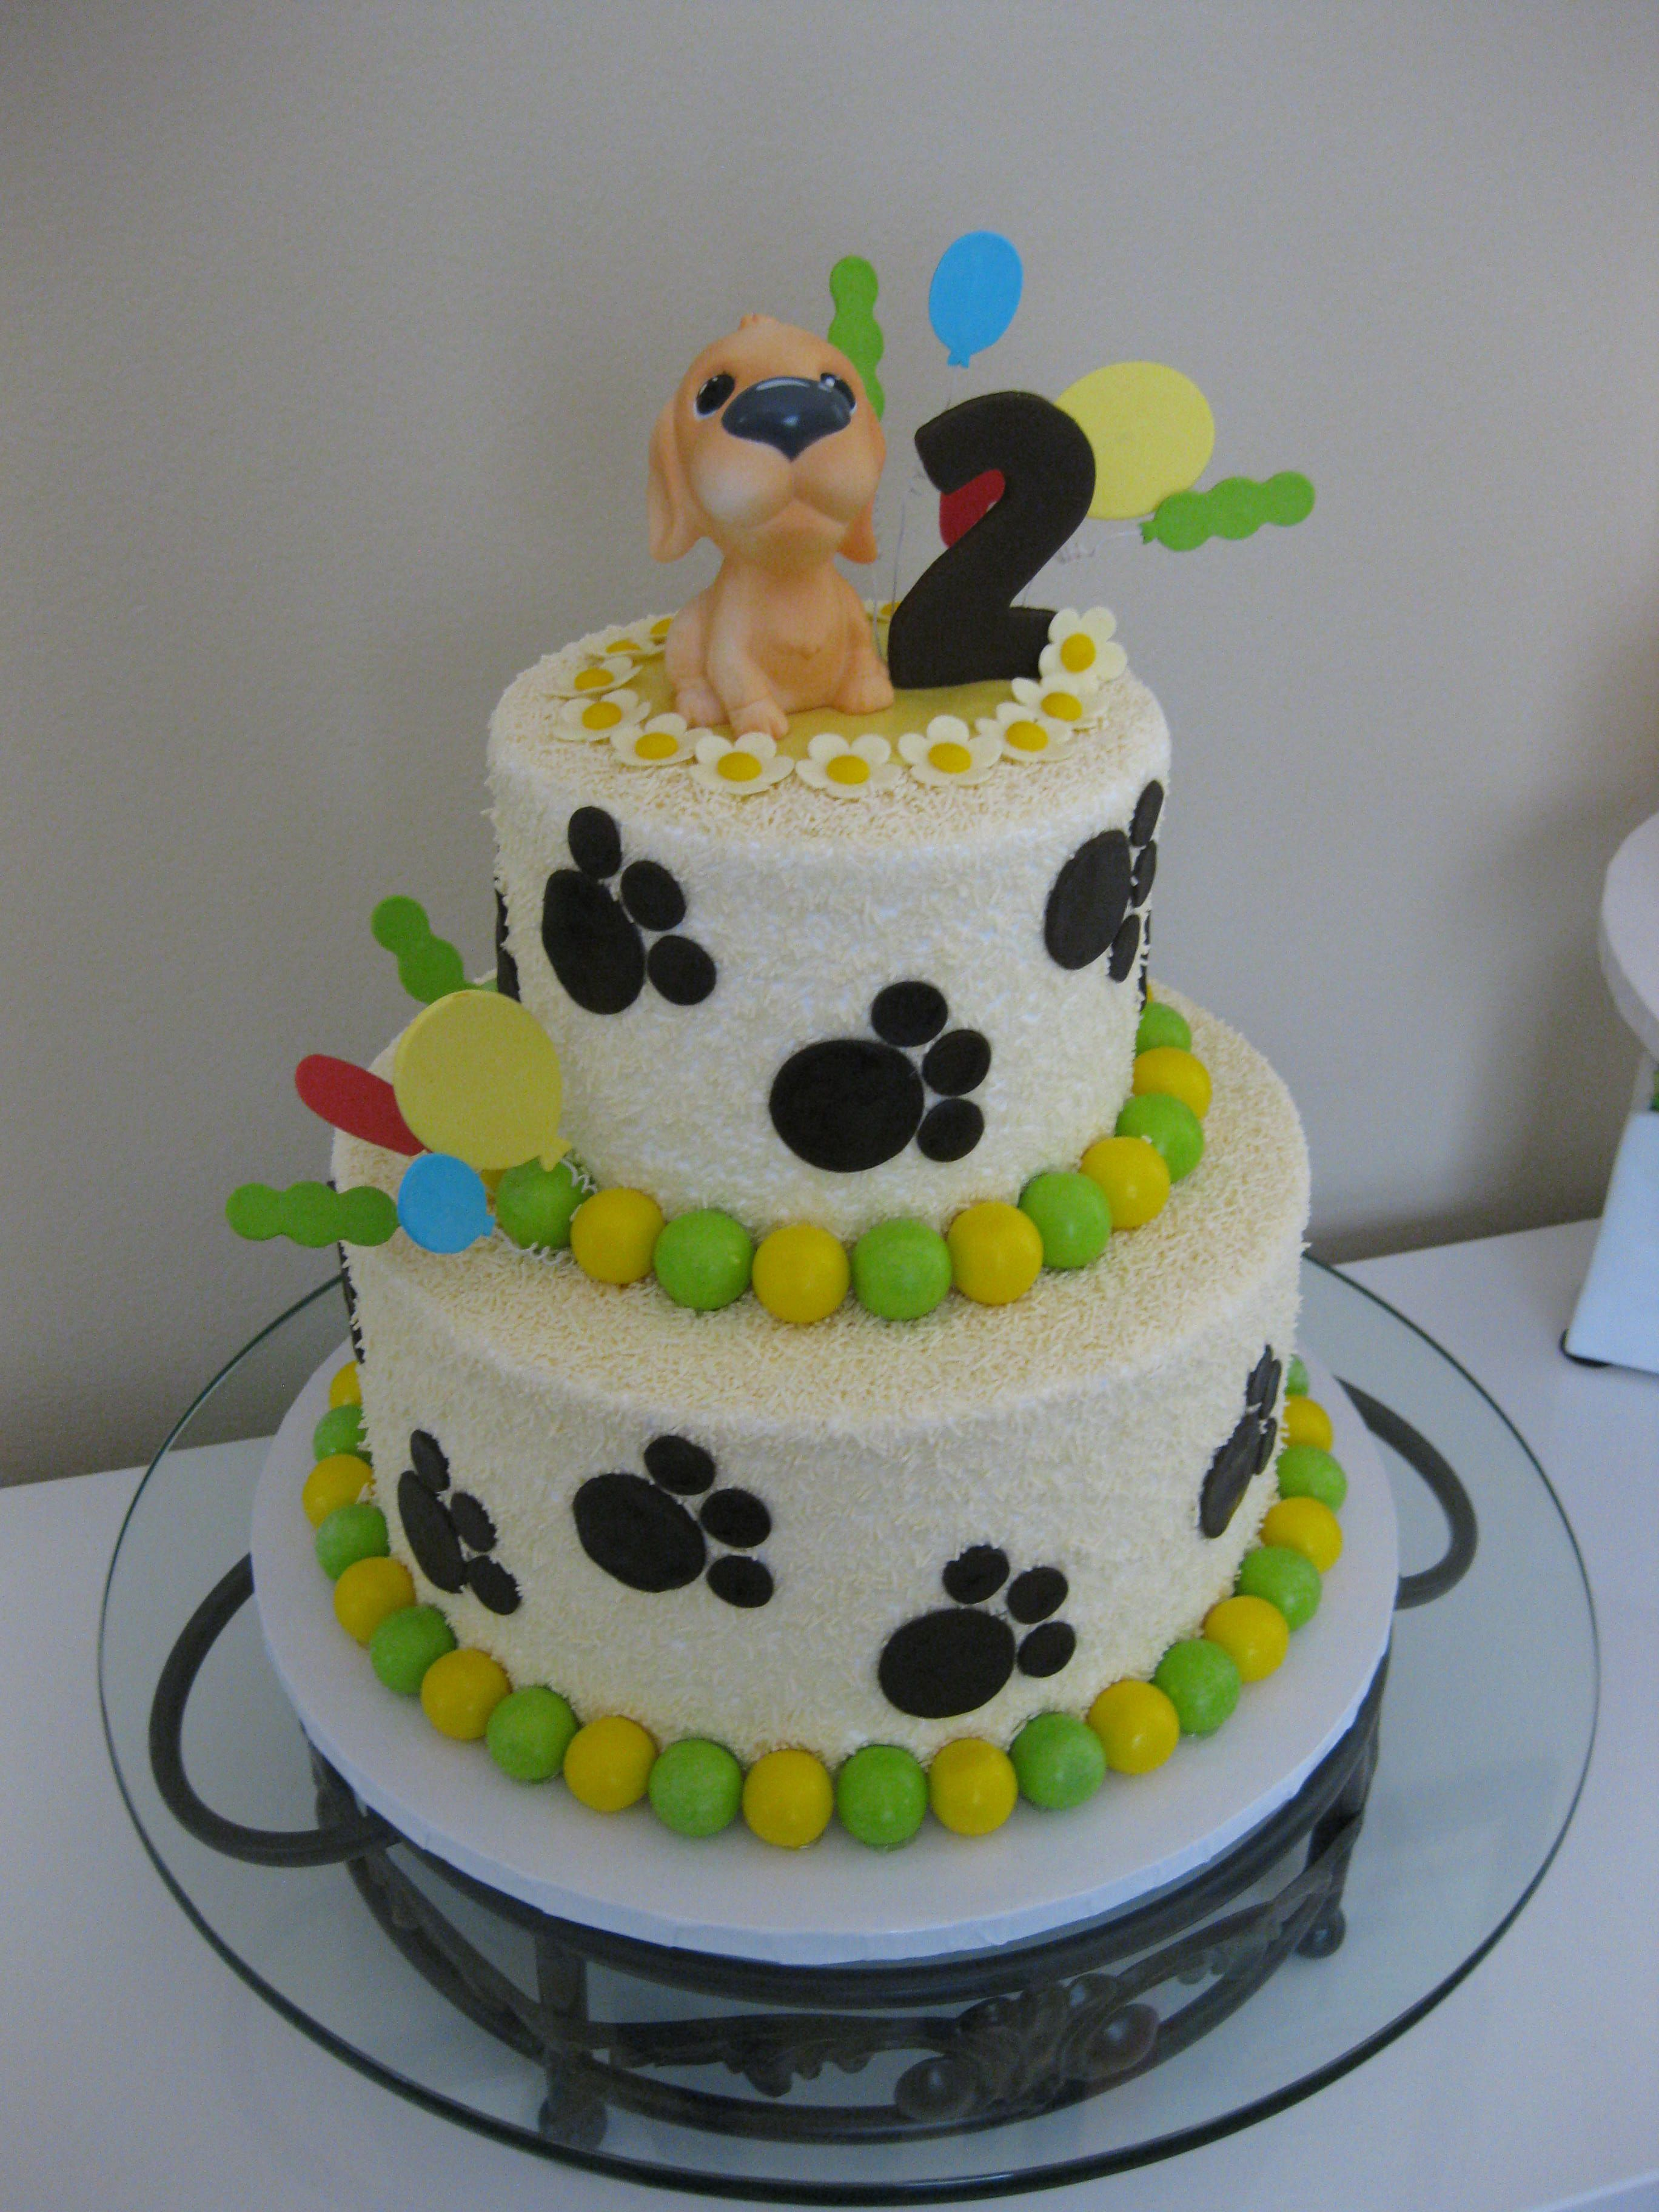 Images Of Birthday Cakes For Little Boy : Birthday cake for a little boy... Birthday/Birthday cake ...